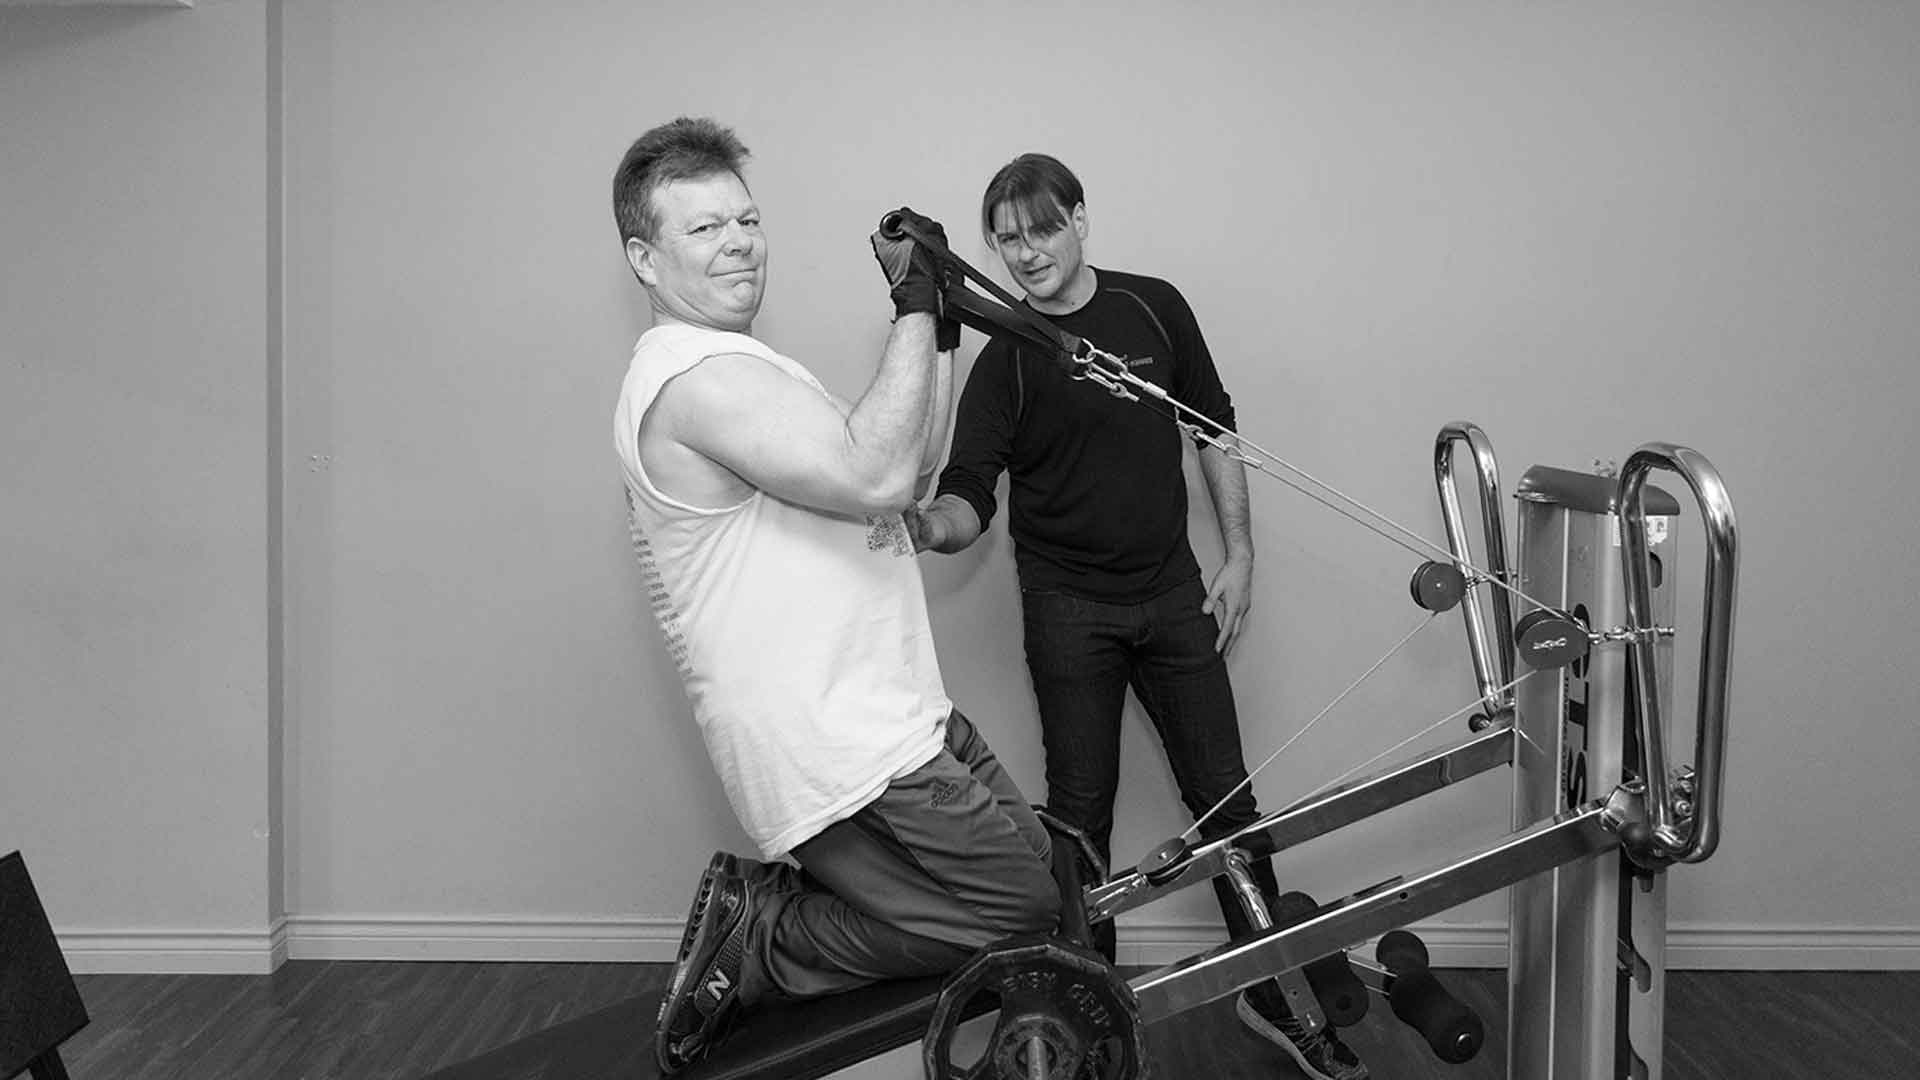 Increase strength with a personal trainer in Vancouver